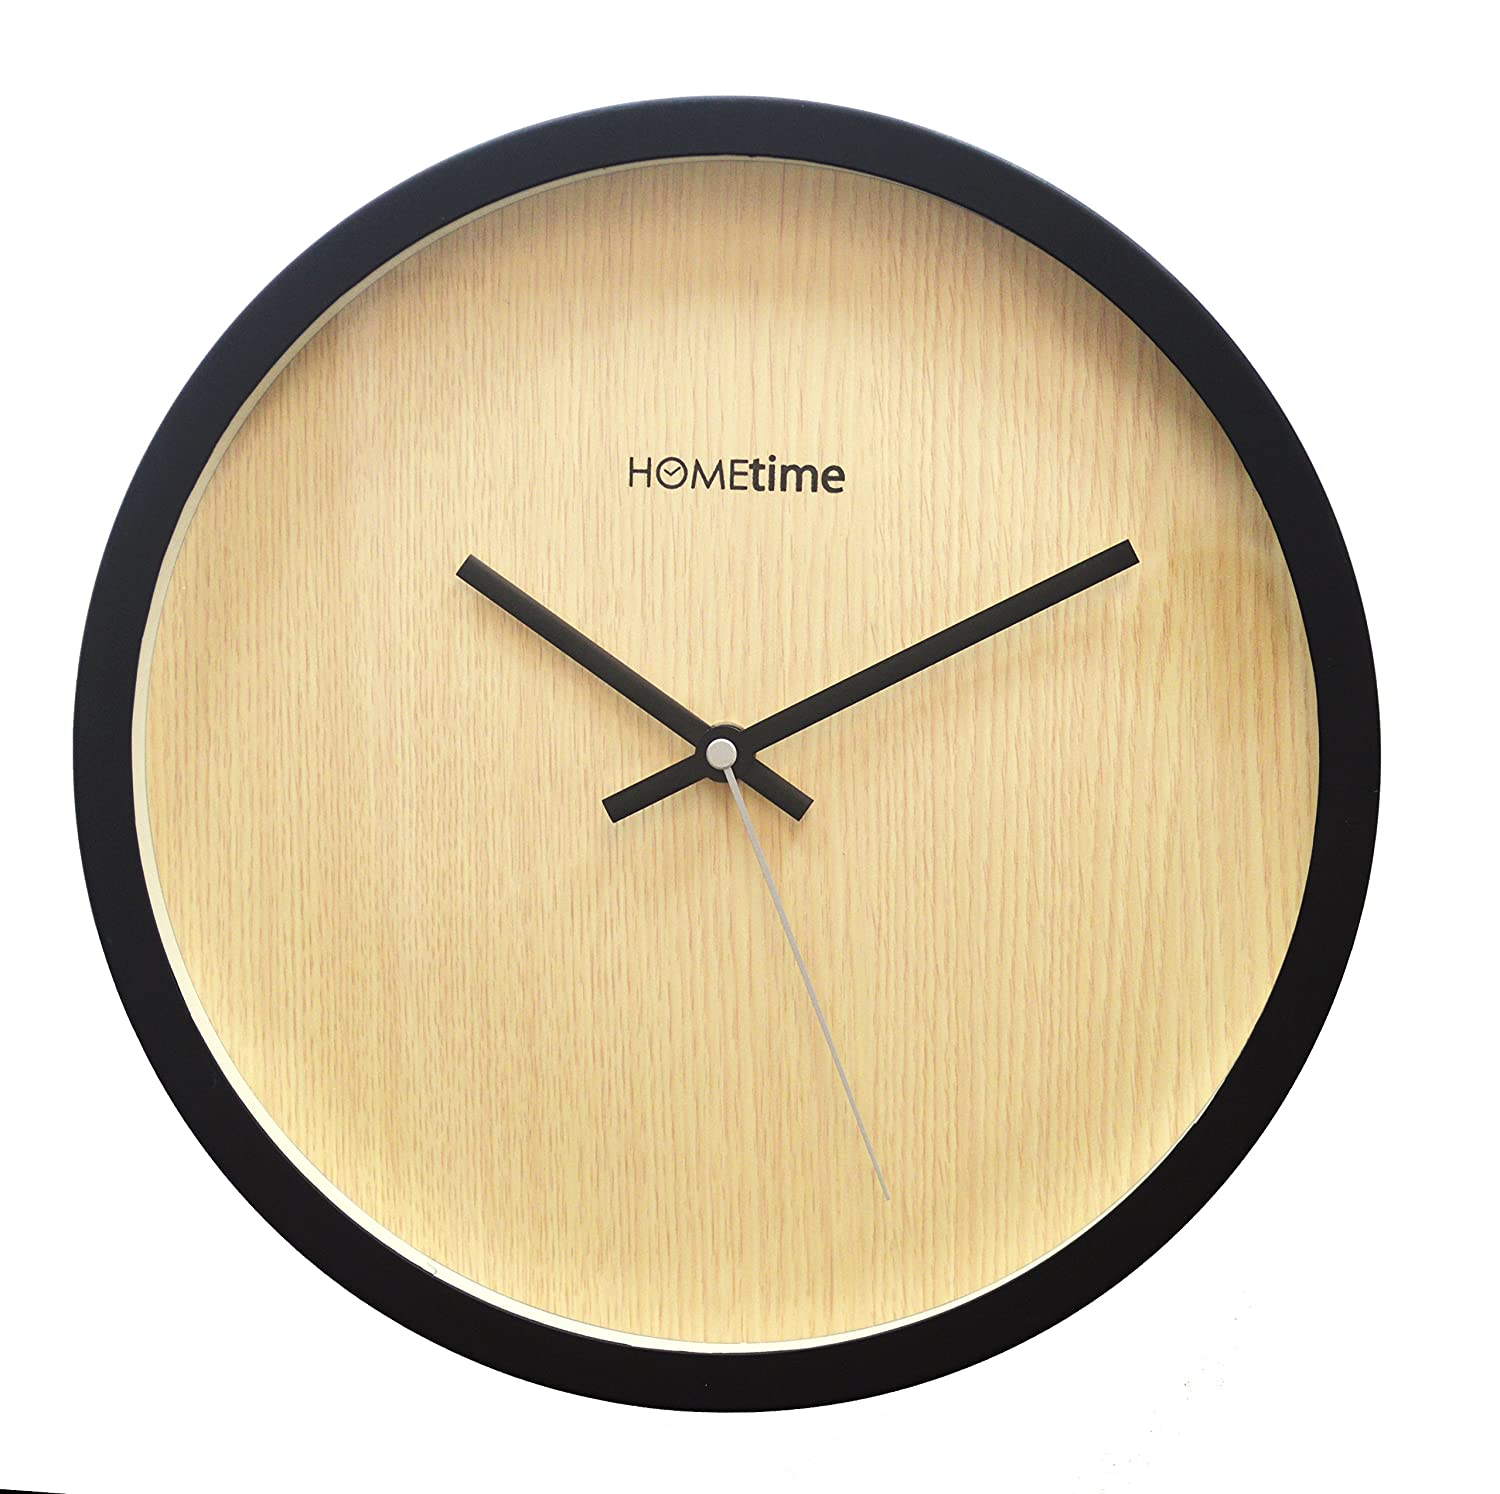 hometime modern wall clock ideal for living room light oak dial 30cm ebay. Black Bedroom Furniture Sets. Home Design Ideas